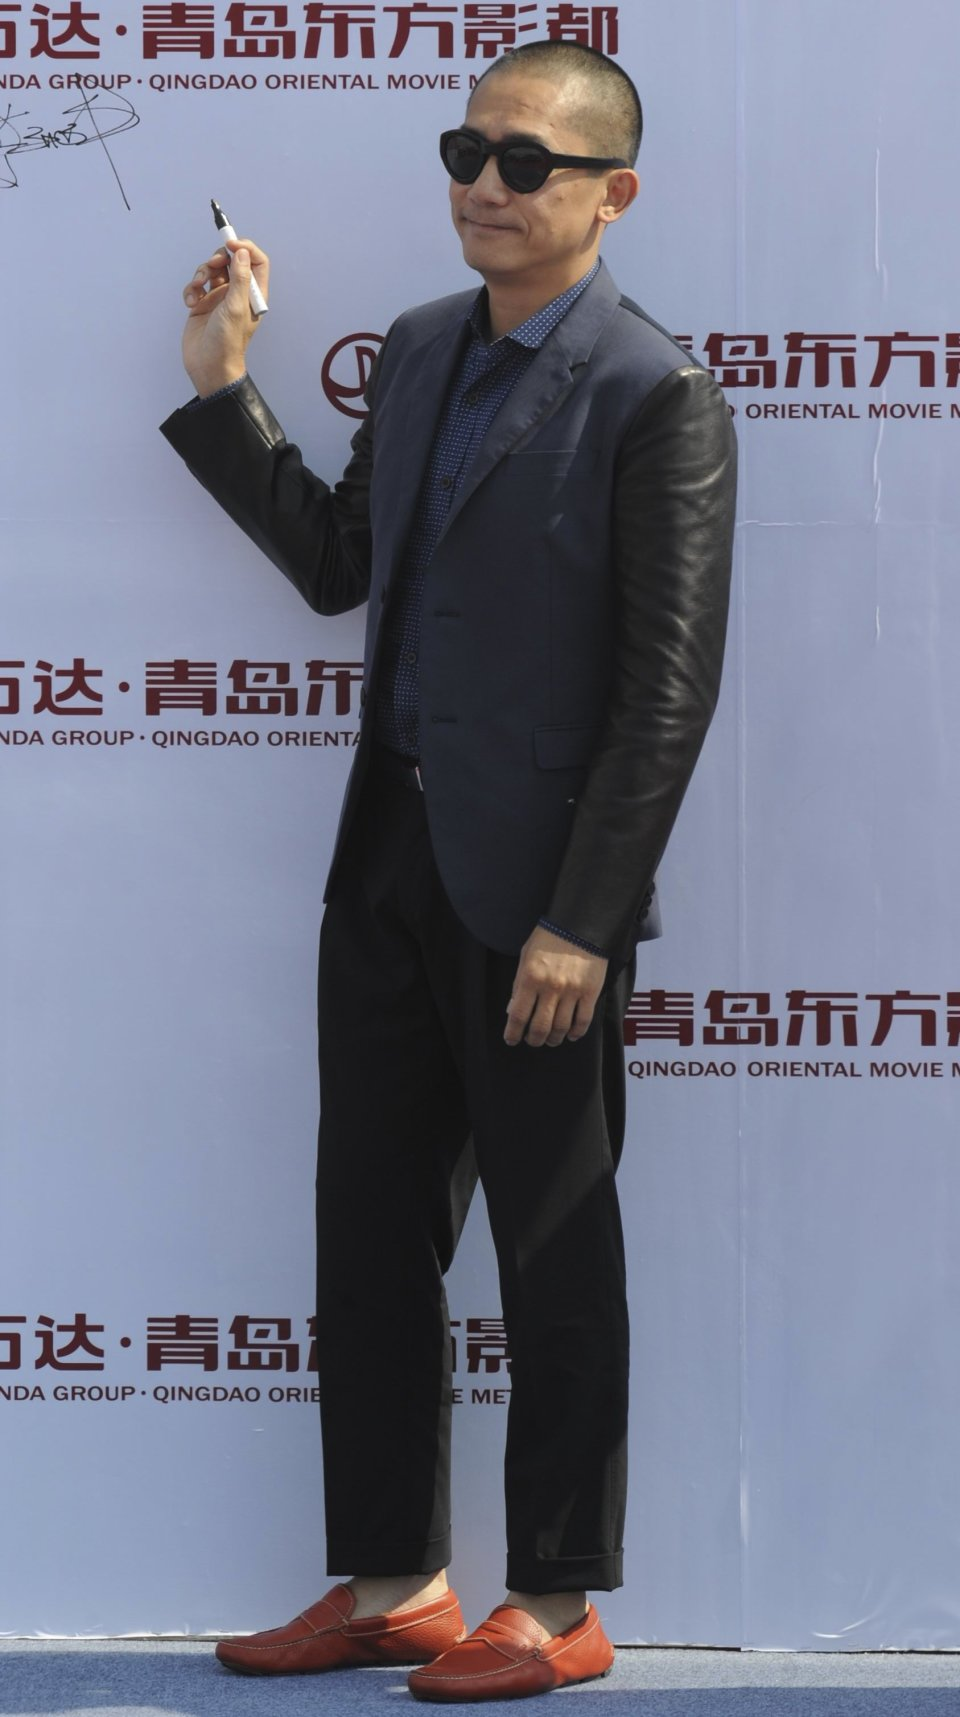 Hong Kong actor Tony Leung attends the launching ceremony of Qingdao Oriental Movie Metropolis in Qingdao in east China's Shandong province, Sunday, Sept. 22, 2013. (AP Photo)